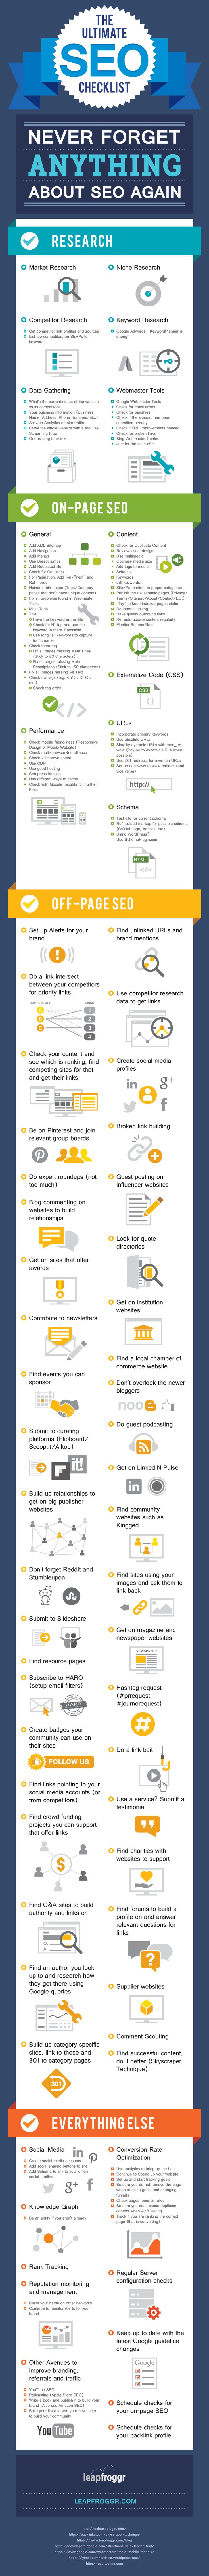 The ultimate SEO Checklist #SEO #DigitalMarketing